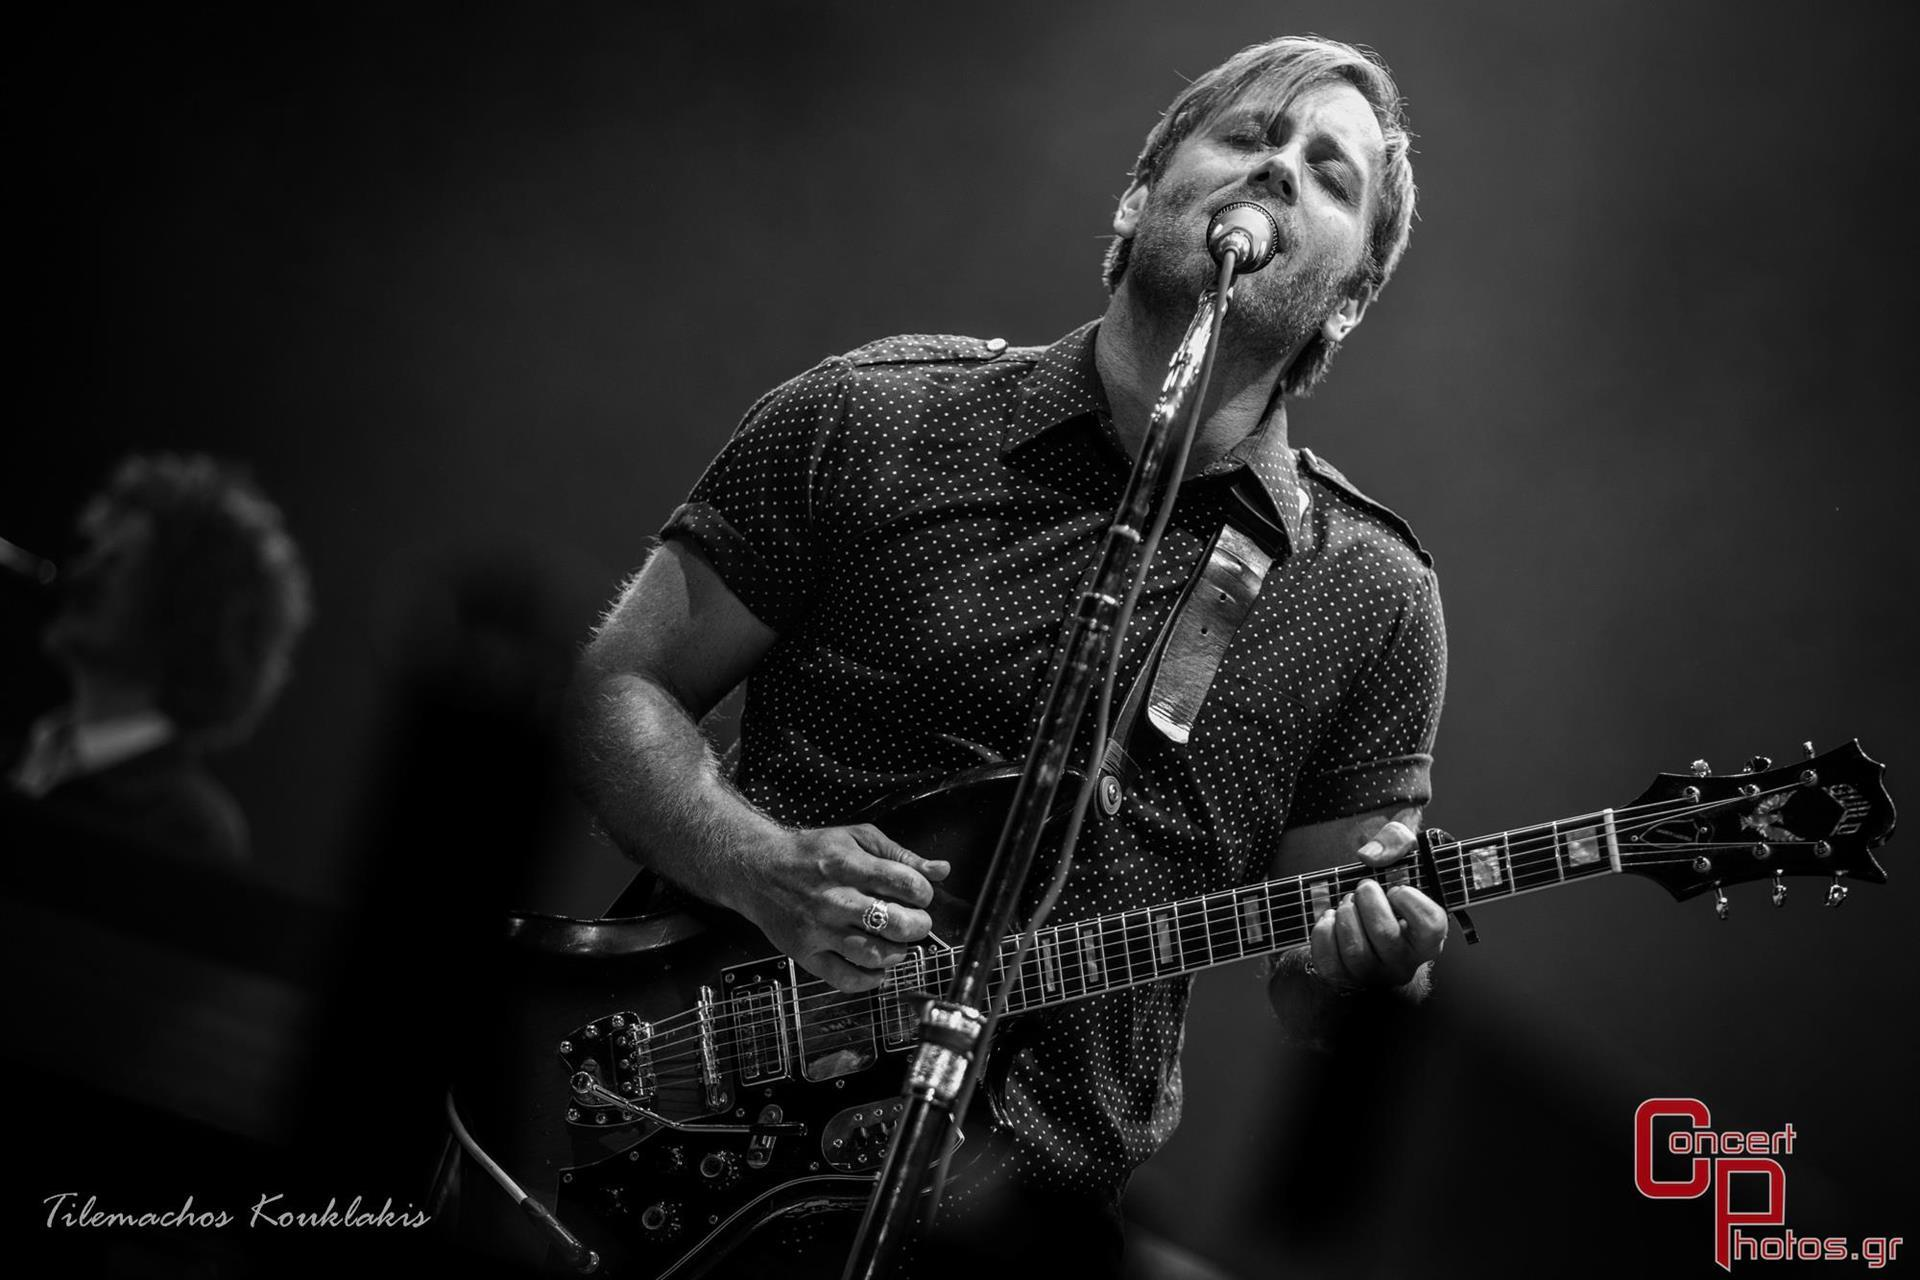 Rockwave 2015 - Black Keys-Black Angels-1000mods-The Big Nose Attack-Puta Volcano-Rockwave 2015 - Black Keys-Black Angels-1000mods photographer:  - 01_Black Keys _13